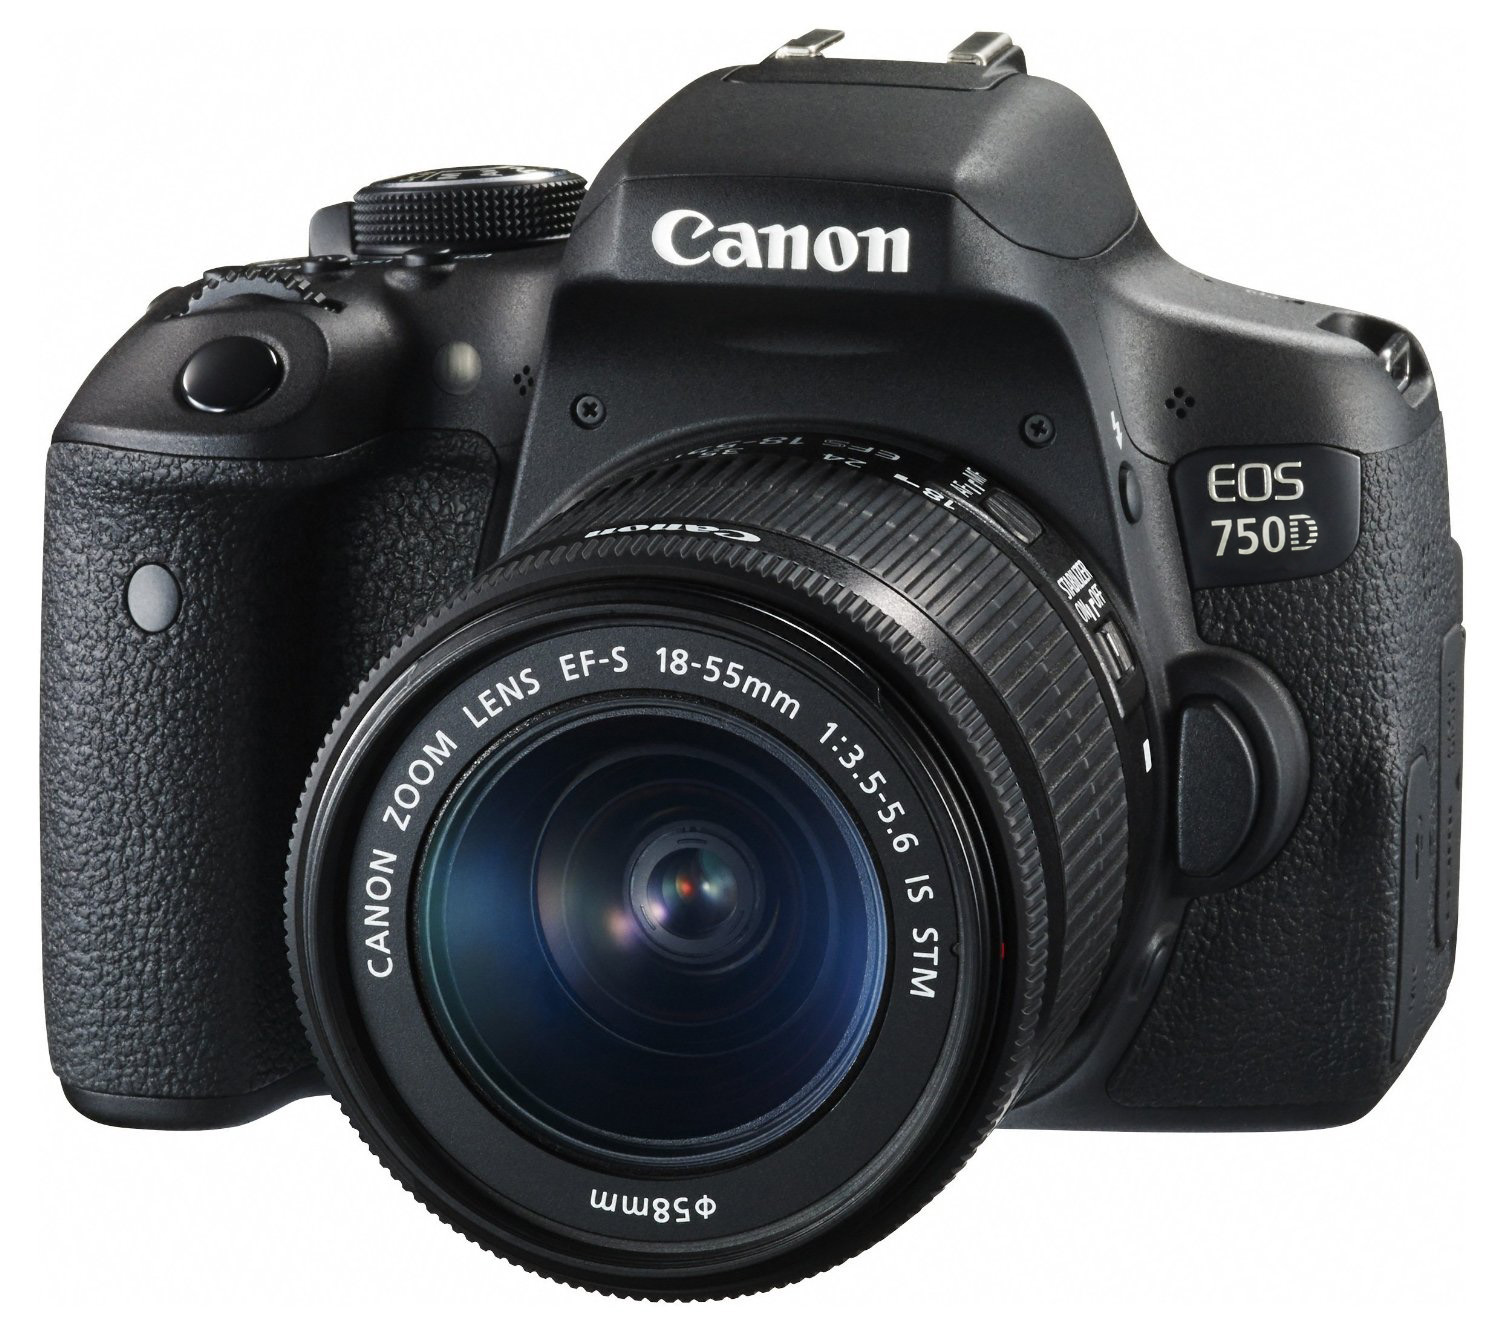 Camera Dslr Quality Compact Camera best camera 2017 the compact csc and dslr cameras expert canon eos 750d main